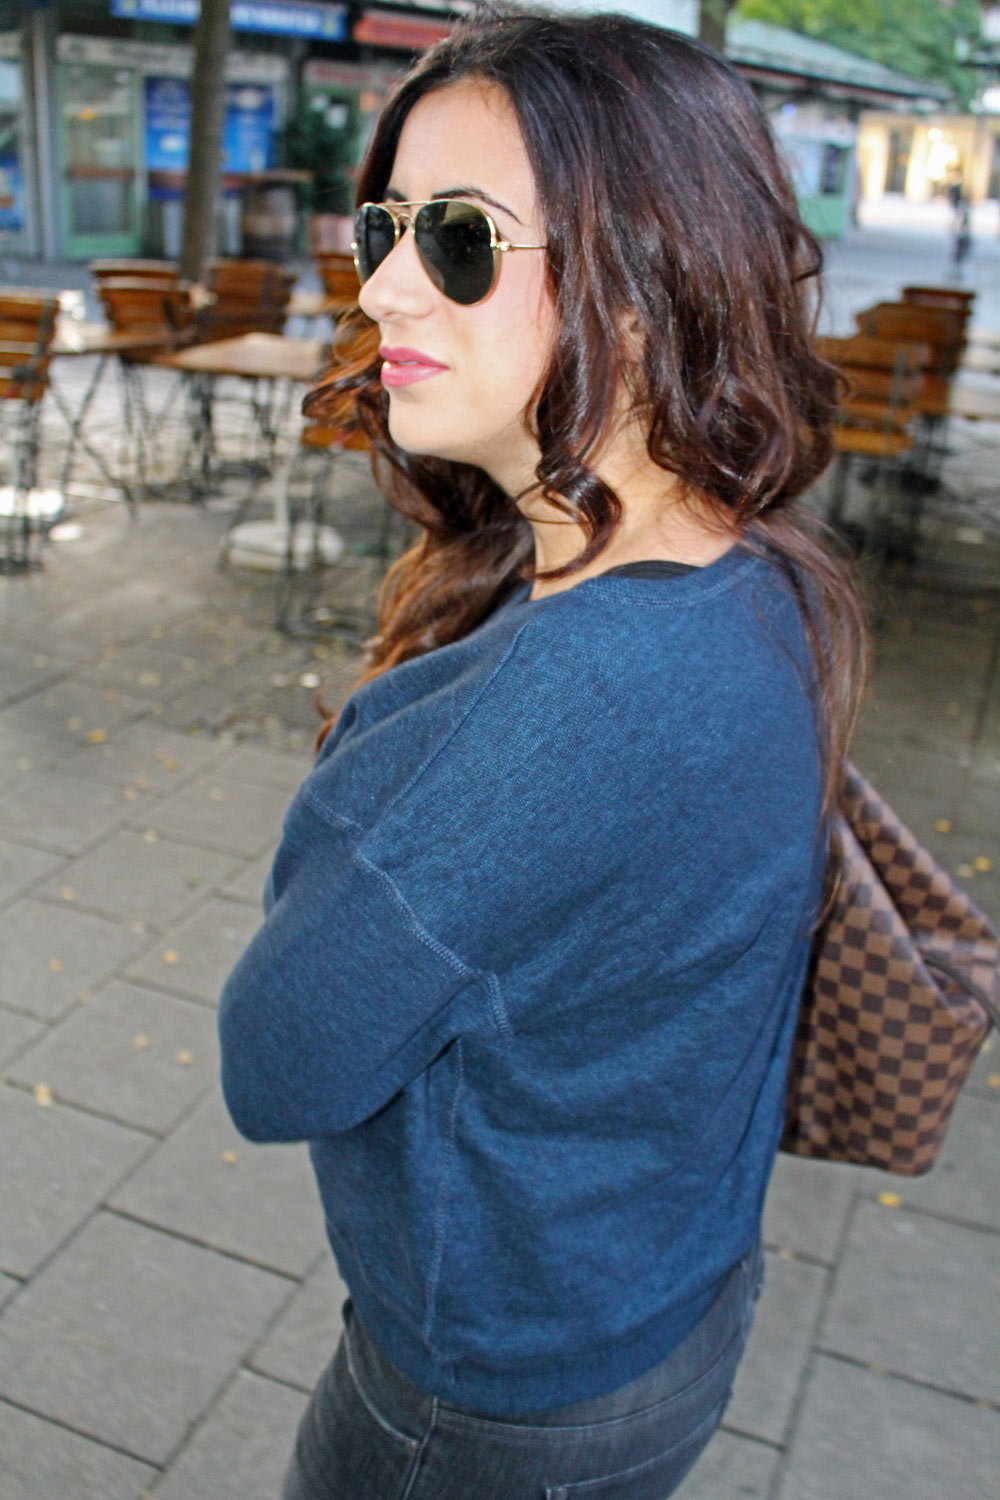 Moments of Fashion, Fashion Blog, München, Ray Ban, Louis Vuitton, Zara, H&M